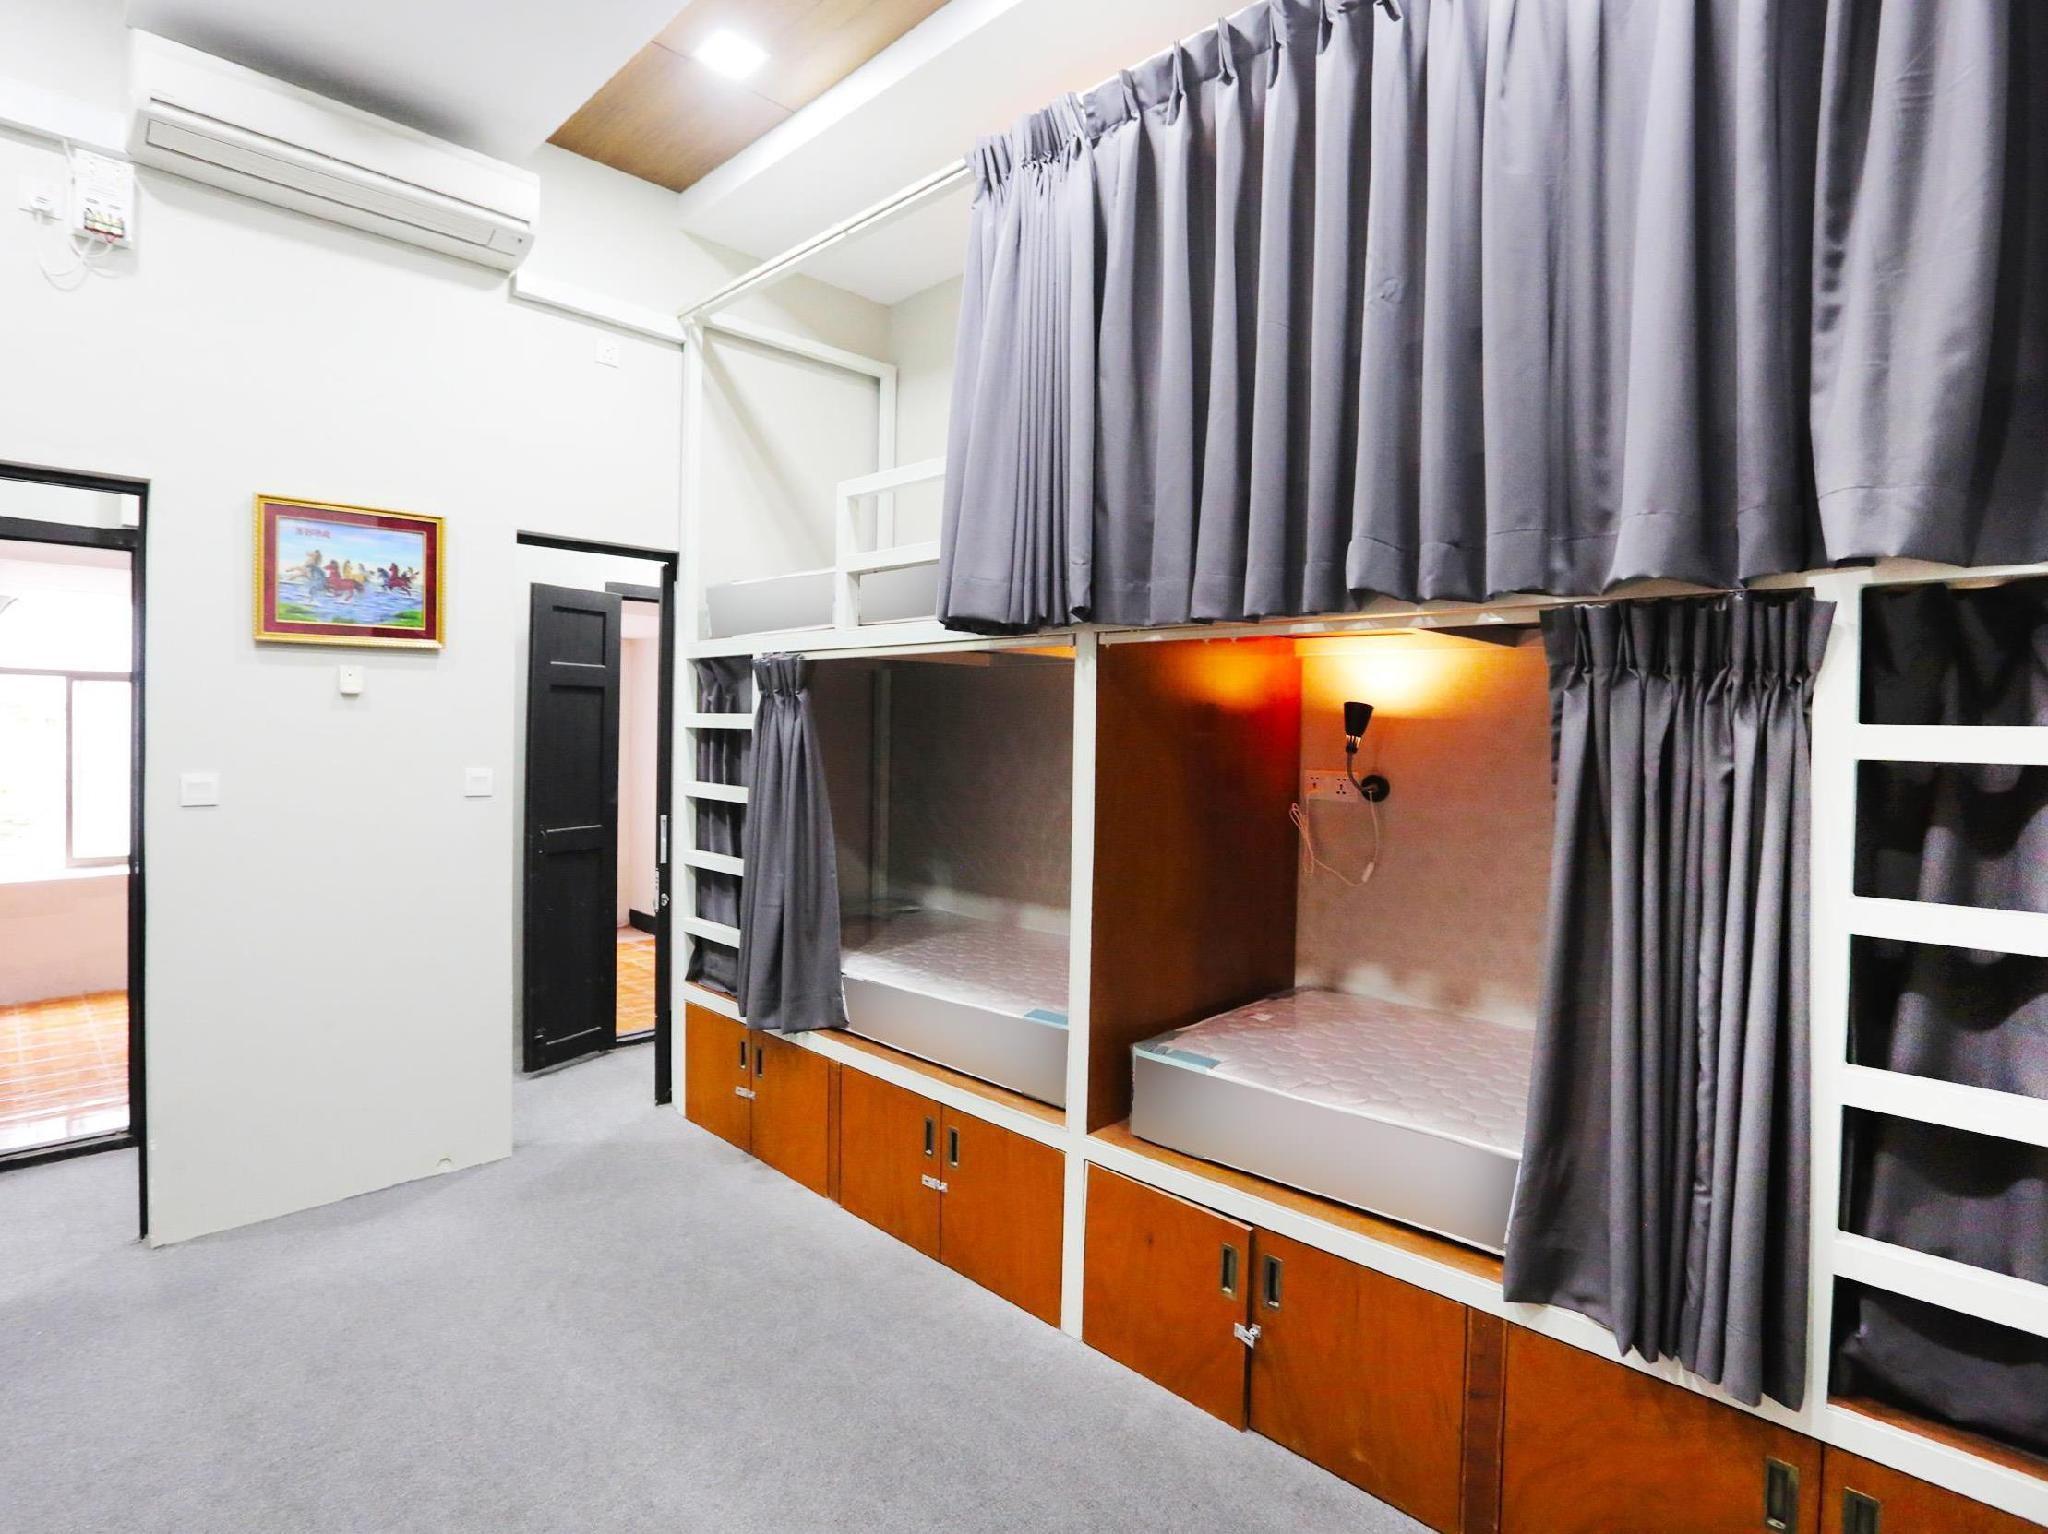 1 Person in 8-Bed Dormitory 4 - Mixed